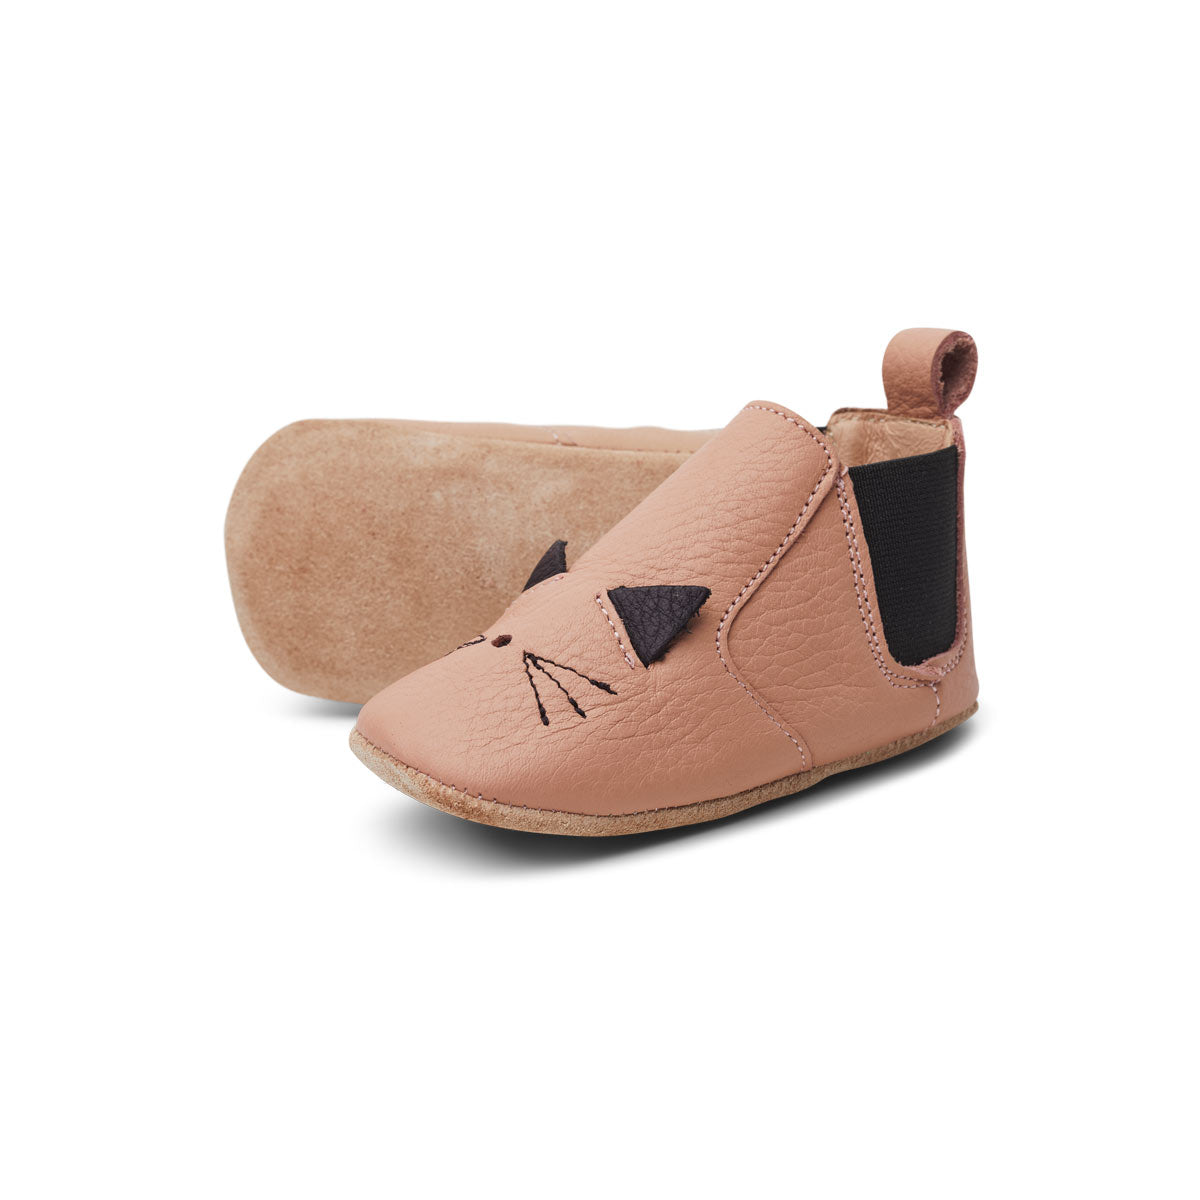 Liewood Edith lædersutsko Shoes 0022 Cat rose